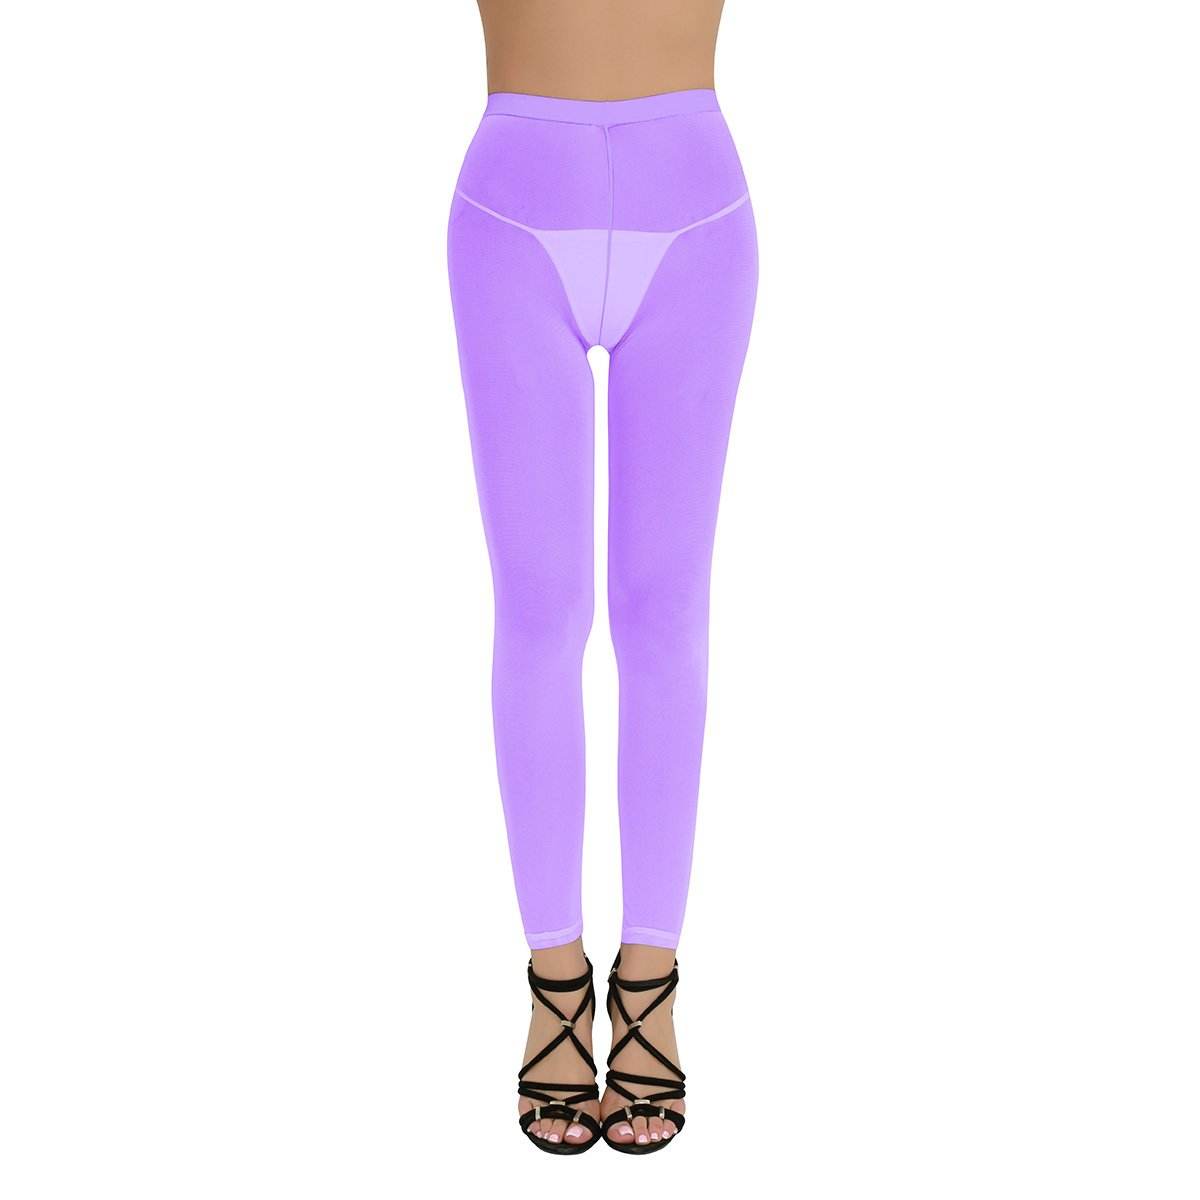 dPois Womens Super Soft Mesh Sheer See-through Full Length Footless Skinny Slimming Tights Leggings Pants Purple One Size